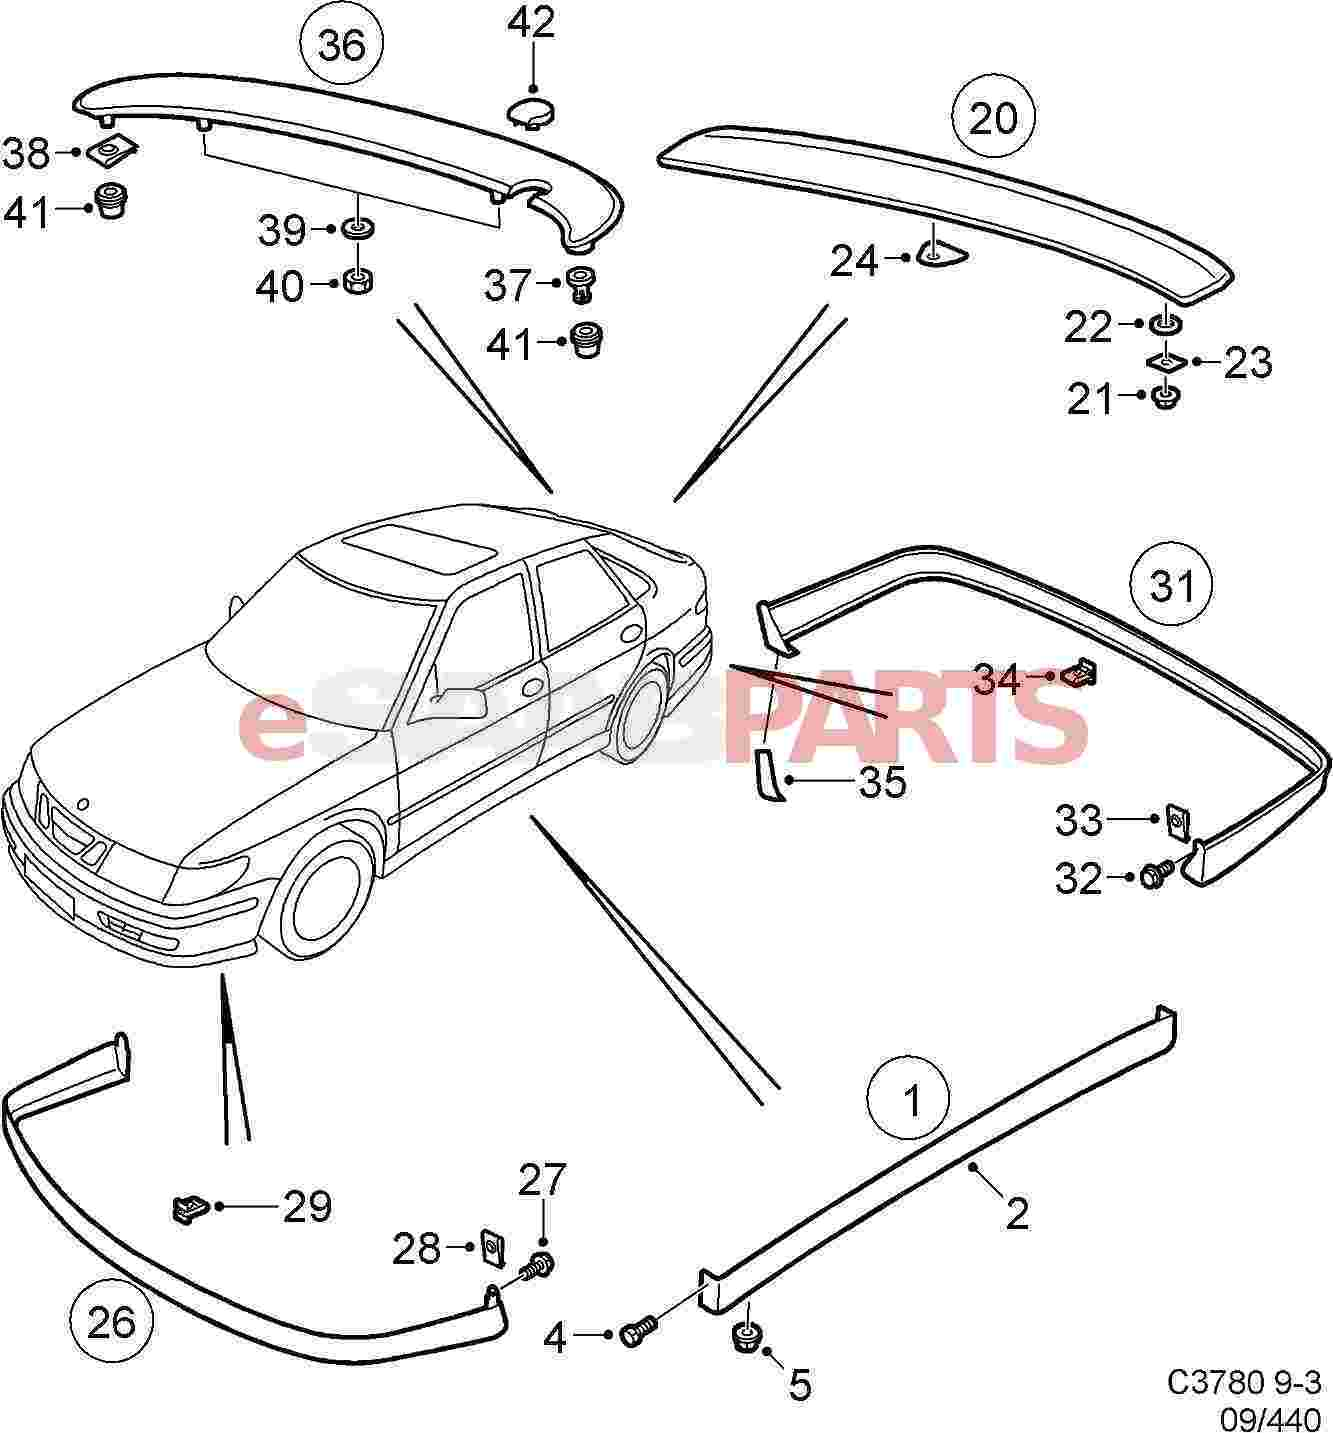 2004 saab 9 3 audio wiring diagram 1972 vw beetle turn signal 1999 amplifier imageresizertool com